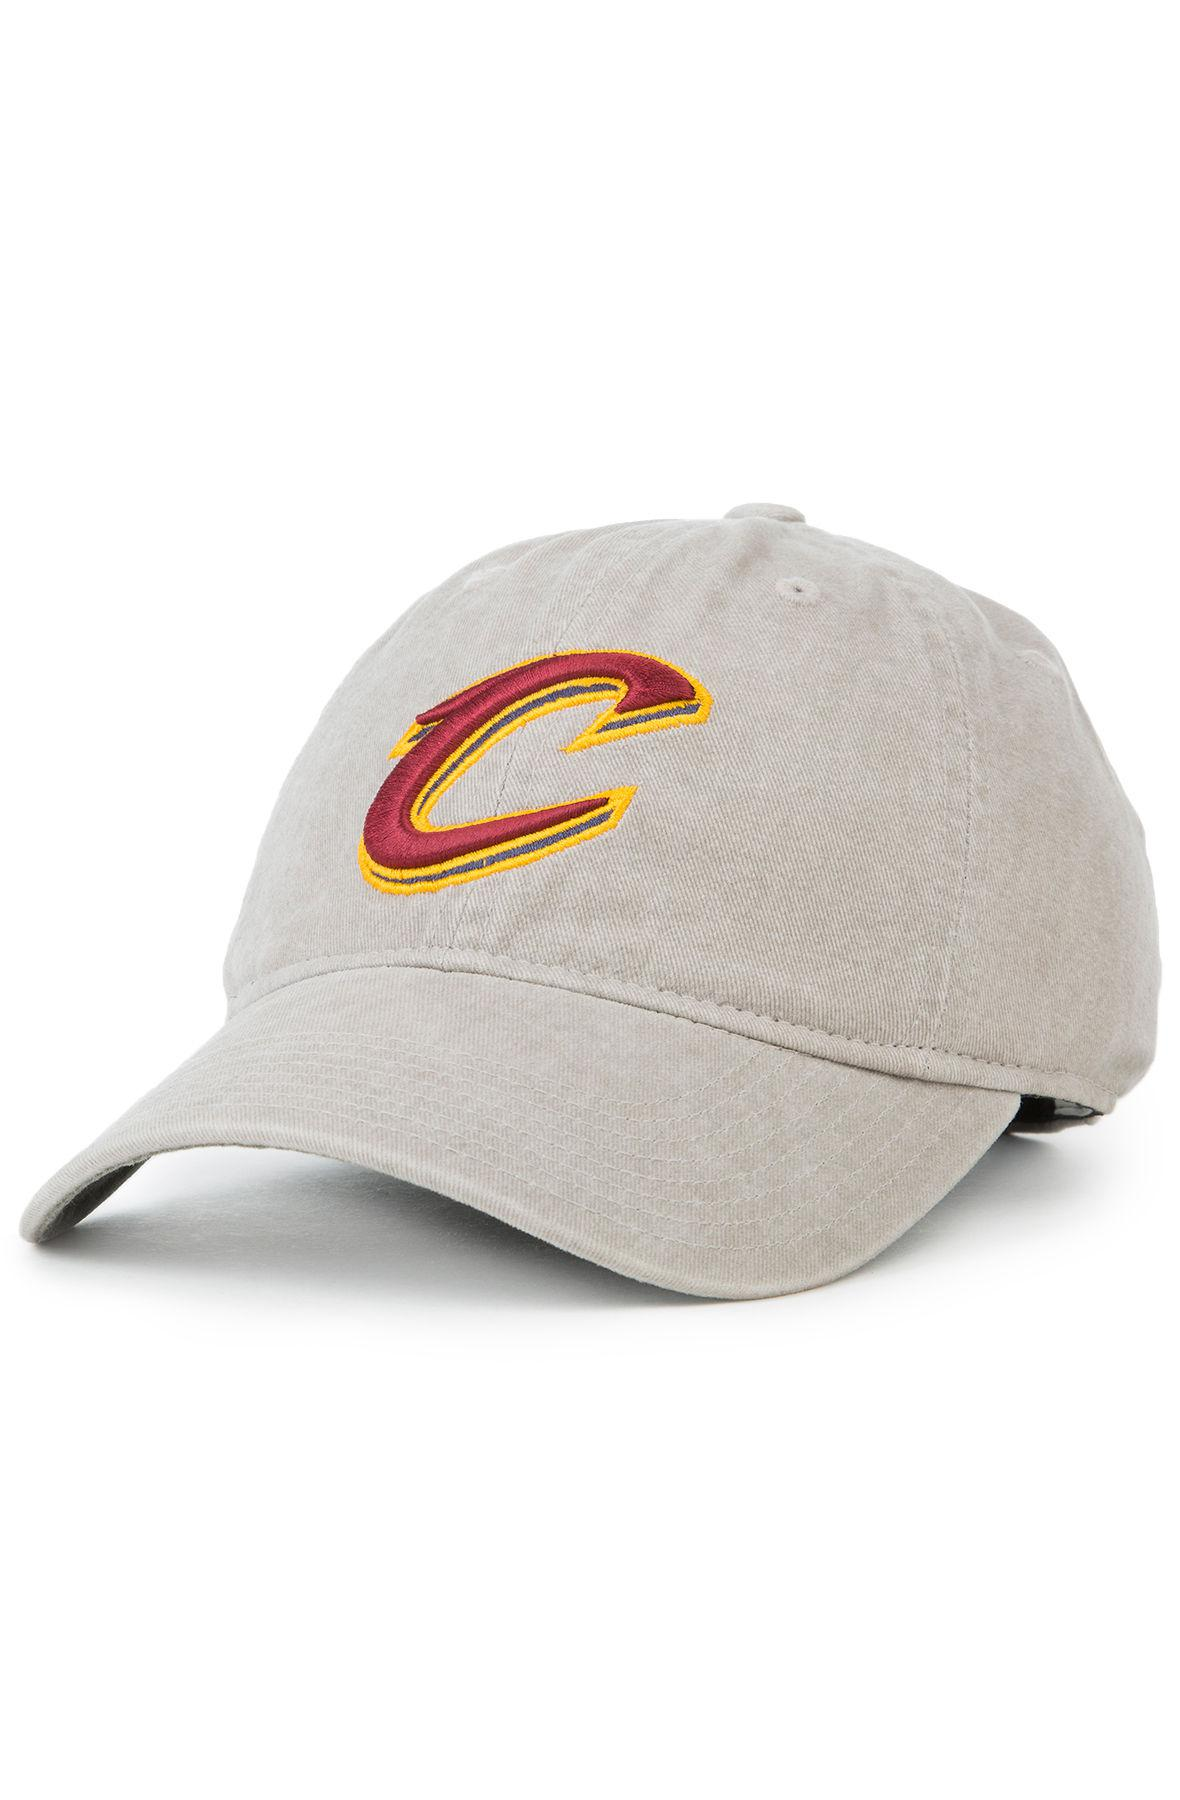 dbf425a3cb9 Lyst - Mitchell   Ness The Cleveland Cavaliers Dad Hat for Men